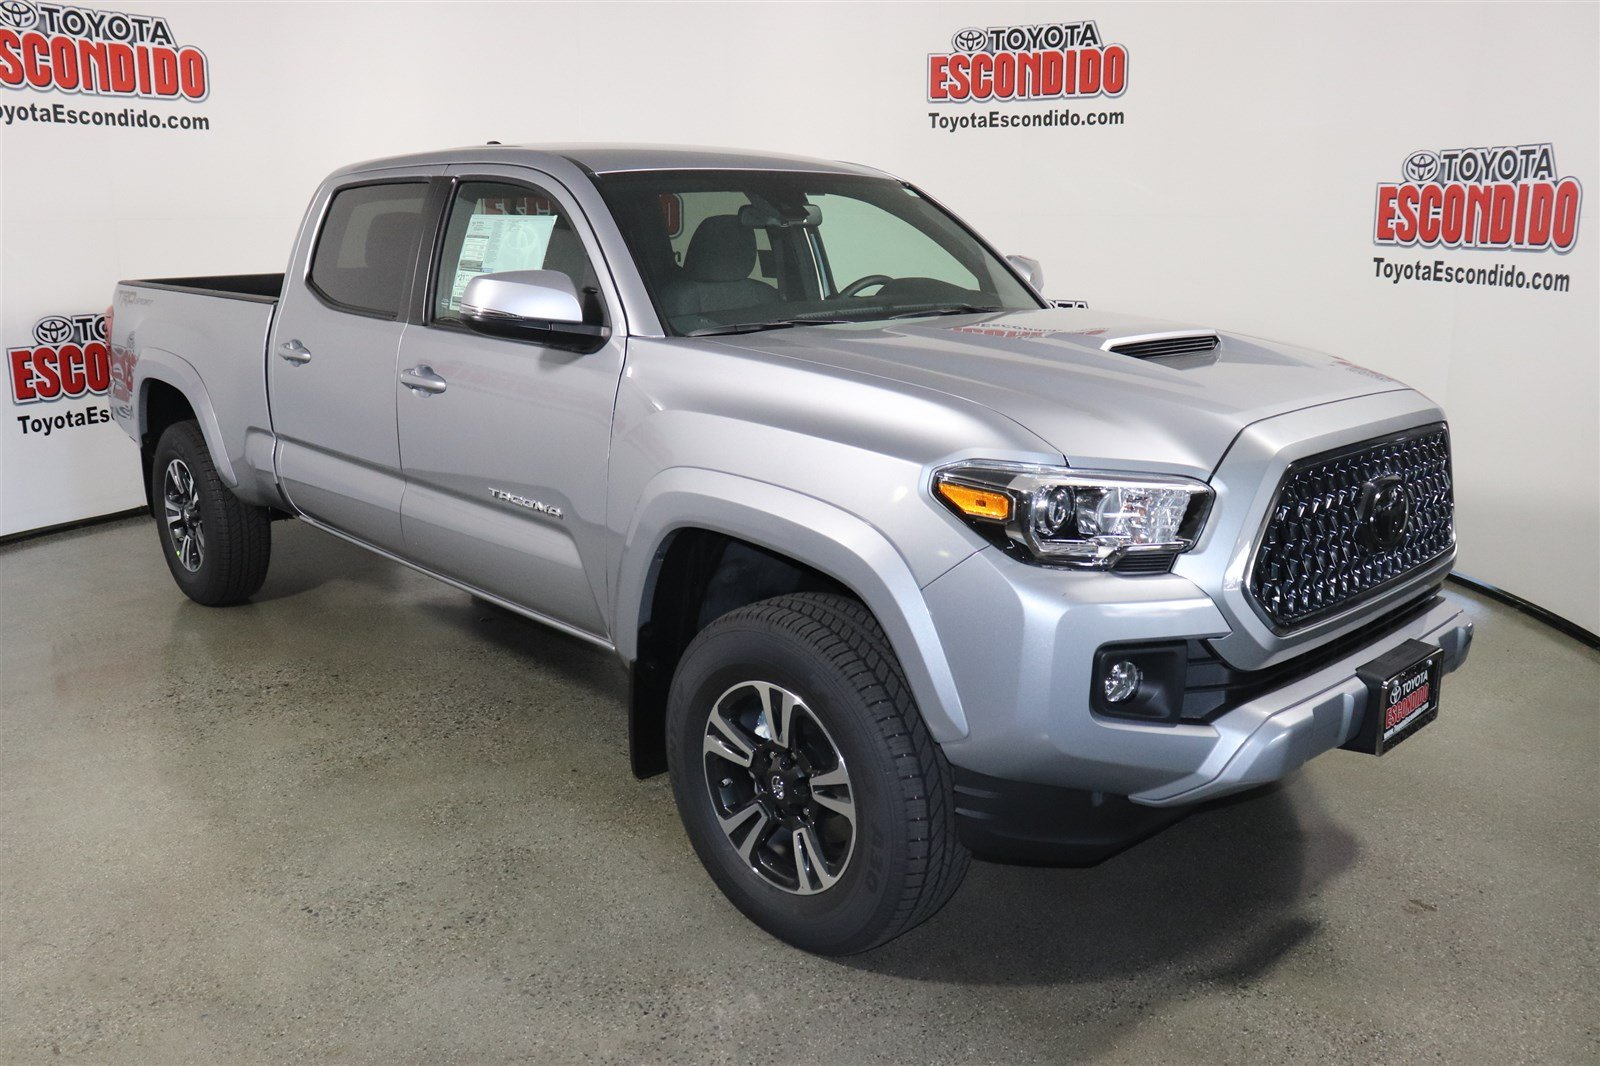 New 2019 Toyota Tacoma 2wd Trd Sport Double Cab Pickup In Escondido Long Bed Fuel Hostage Wheels